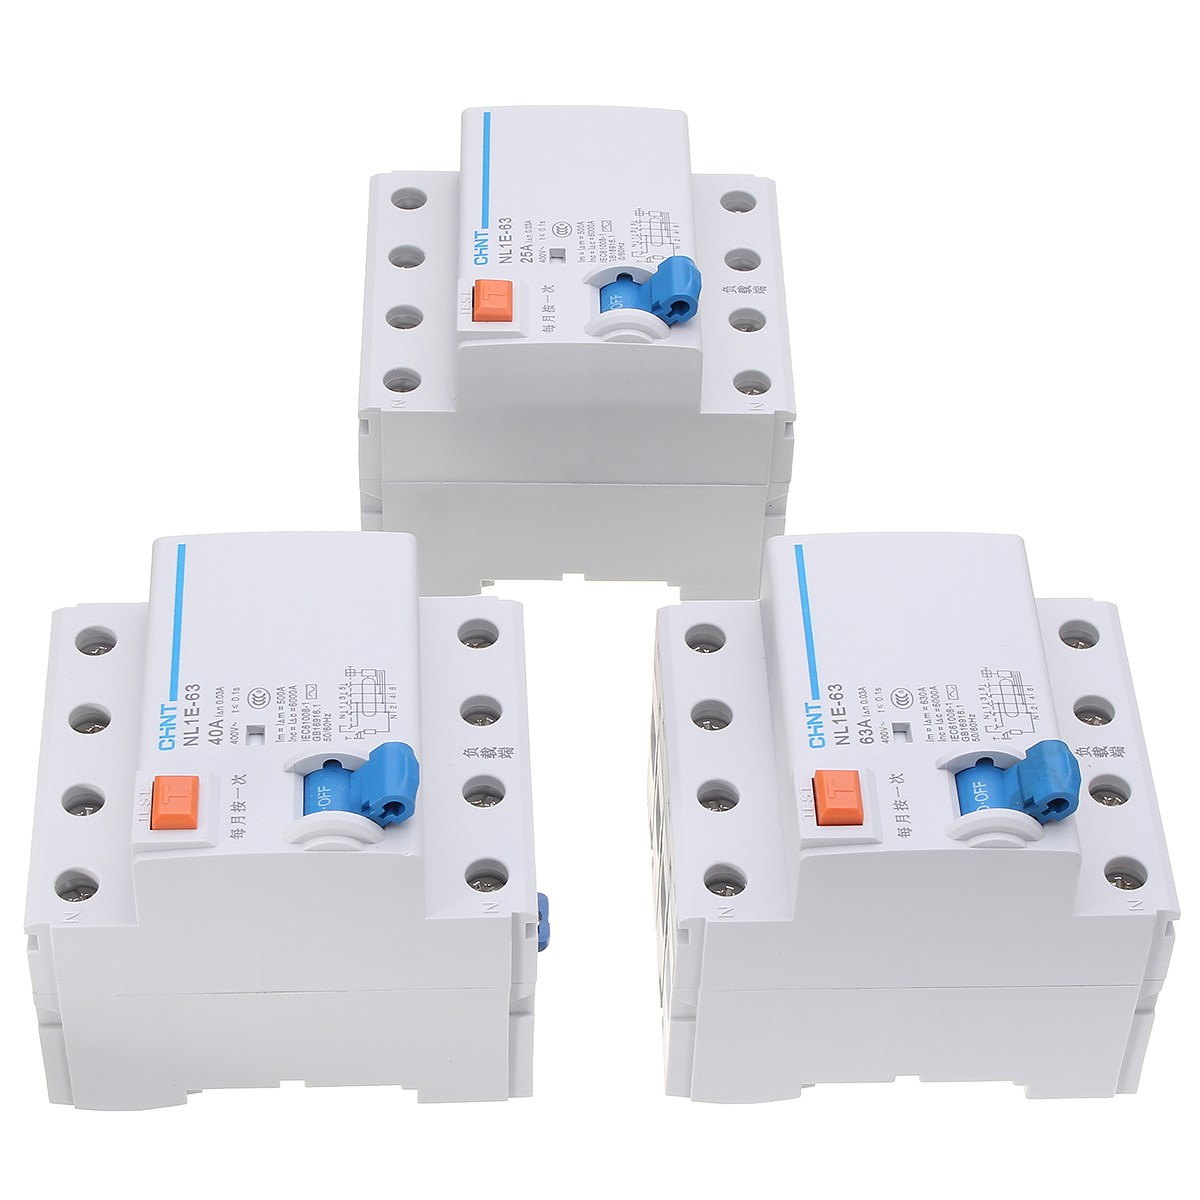 25/40/63A Miniature Circuit Breaker NL1E-63 AC 400V 4 Pole Rated Current 400 amp 3 pole cm1 type moulded case type circuit breaker mccb